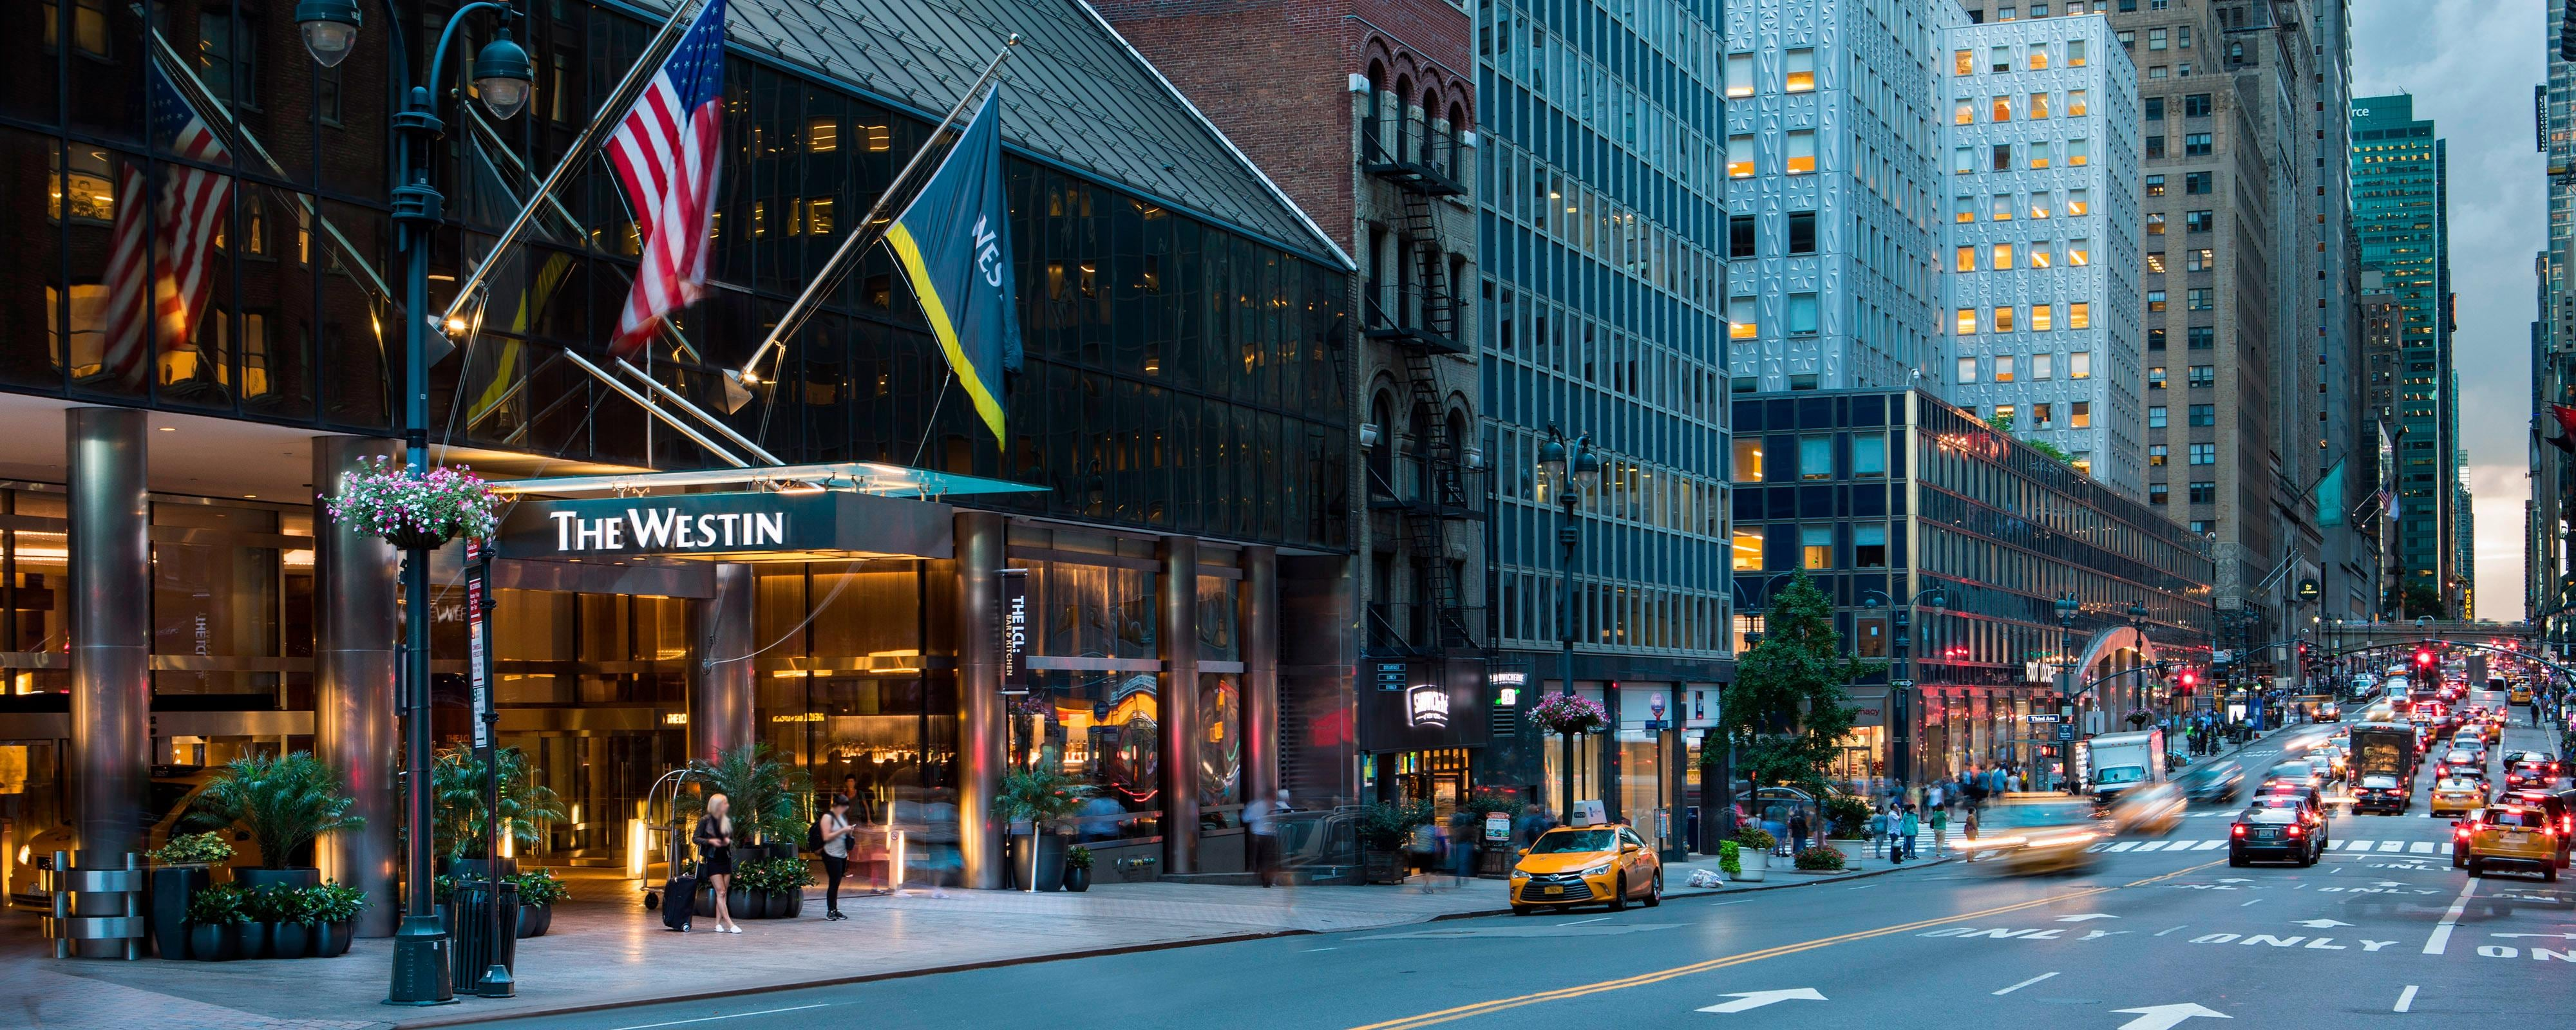 grand central station hotel new york the westin new. Black Bedroom Furniture Sets. Home Design Ideas